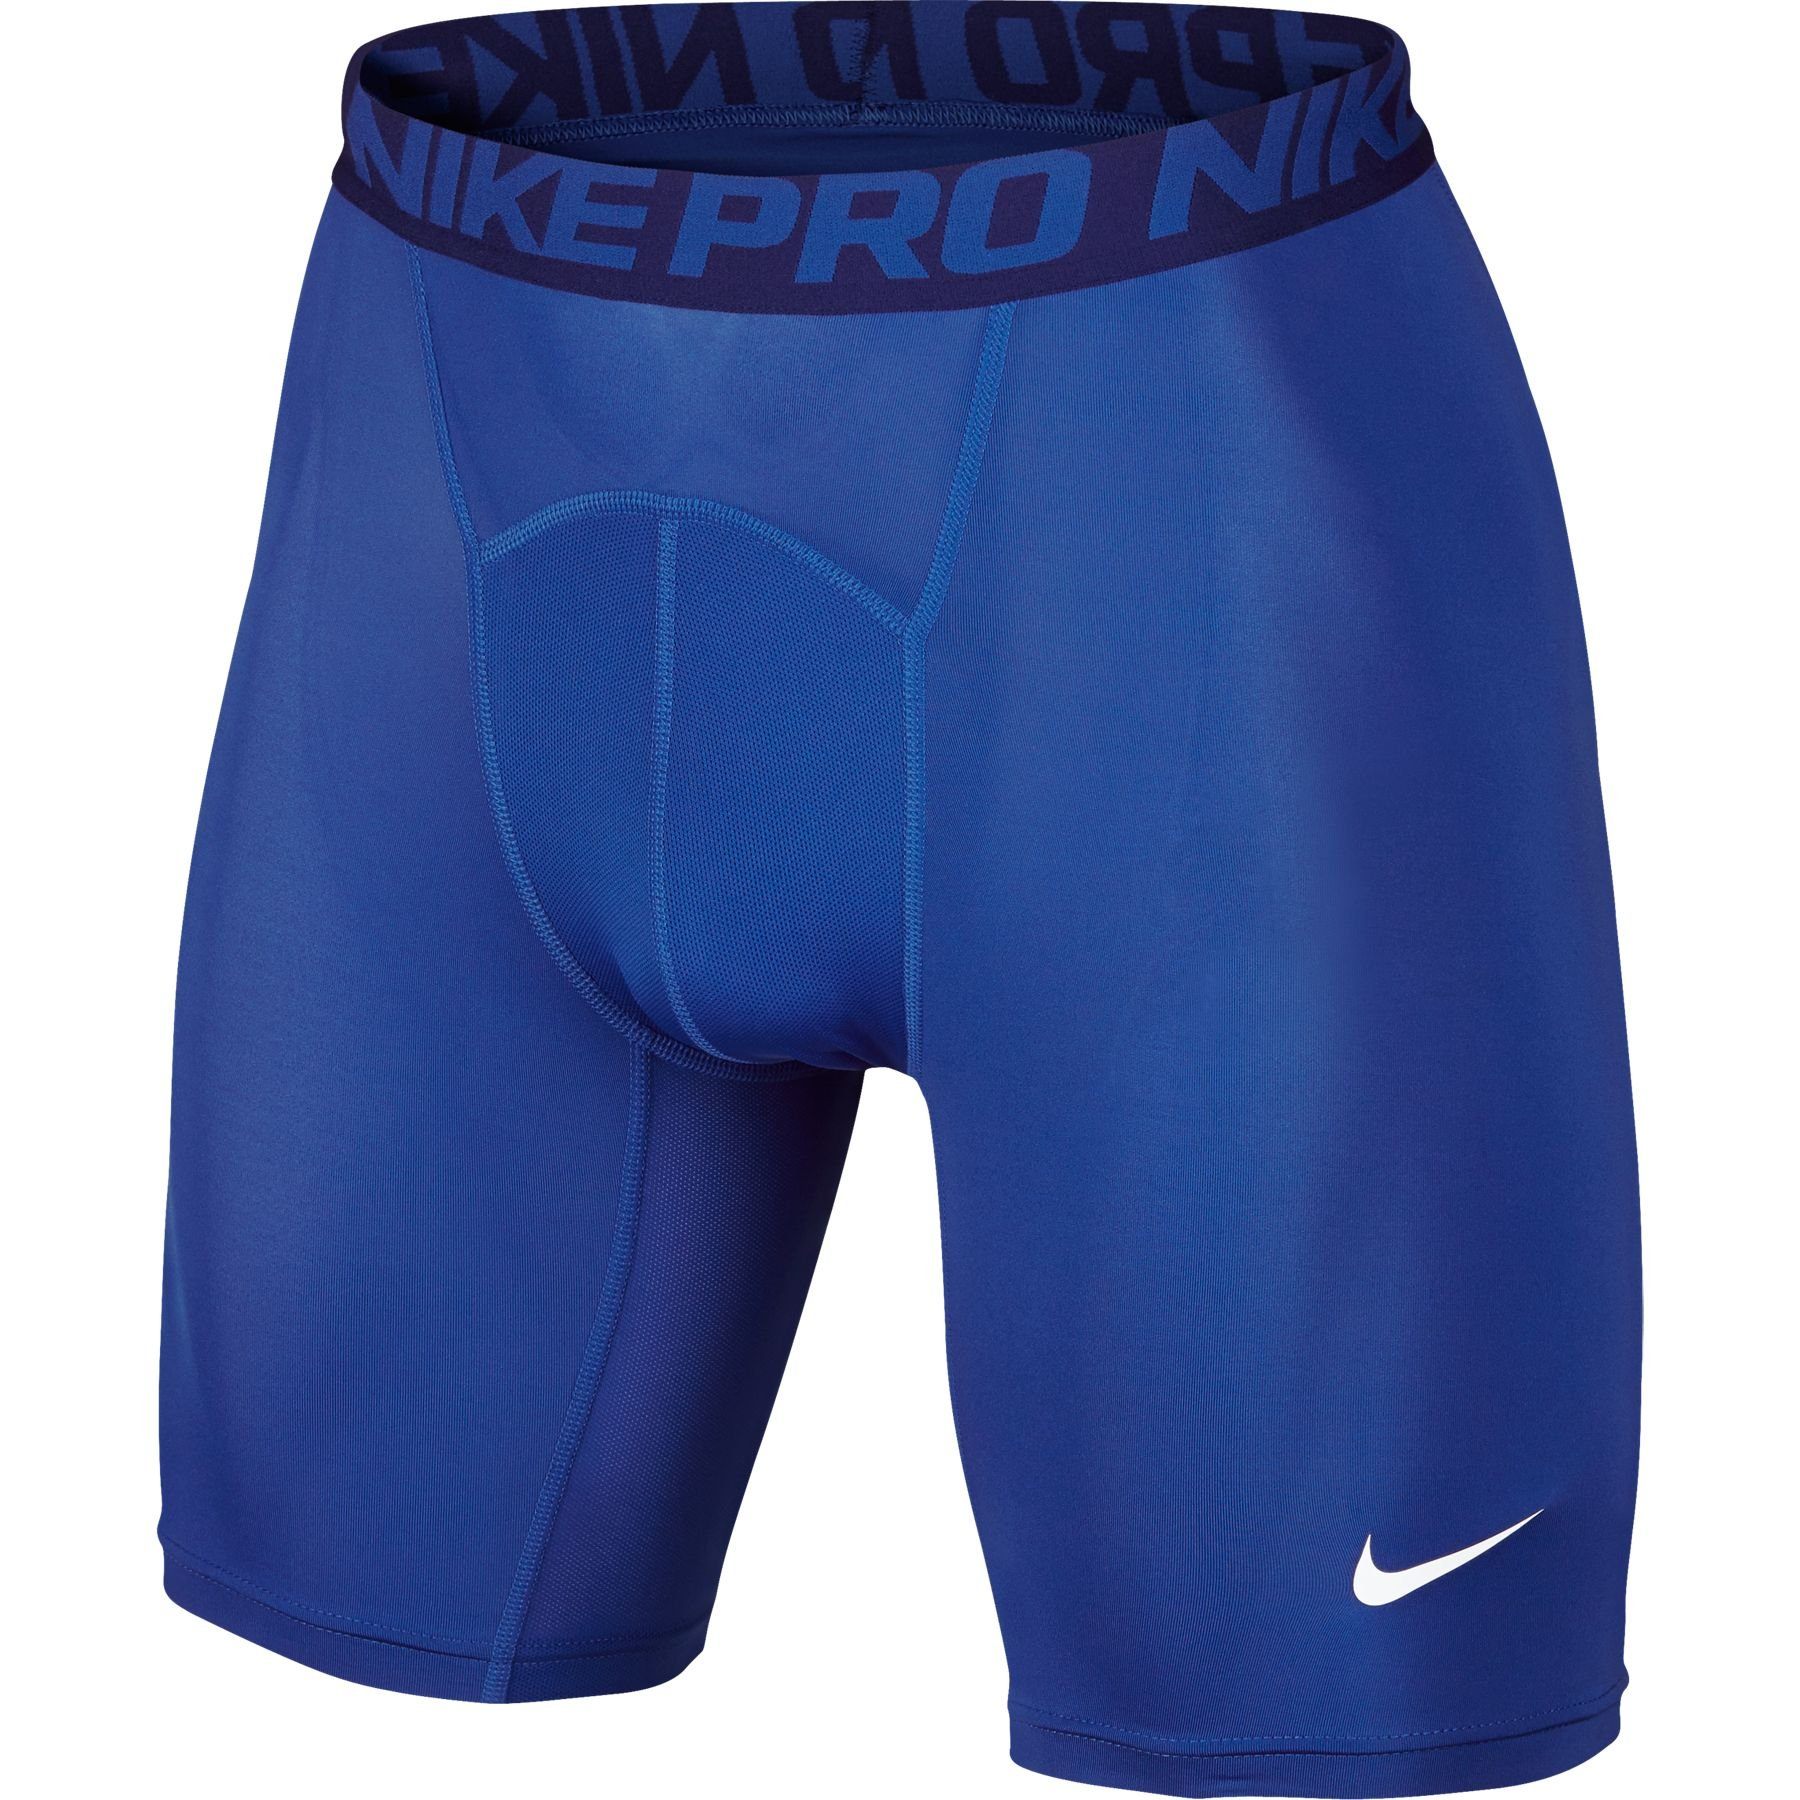 Nike Pro Combat Men's 6'' Compression Shorts Underwear,Game Royal/Deep Royal Blue/White,Large